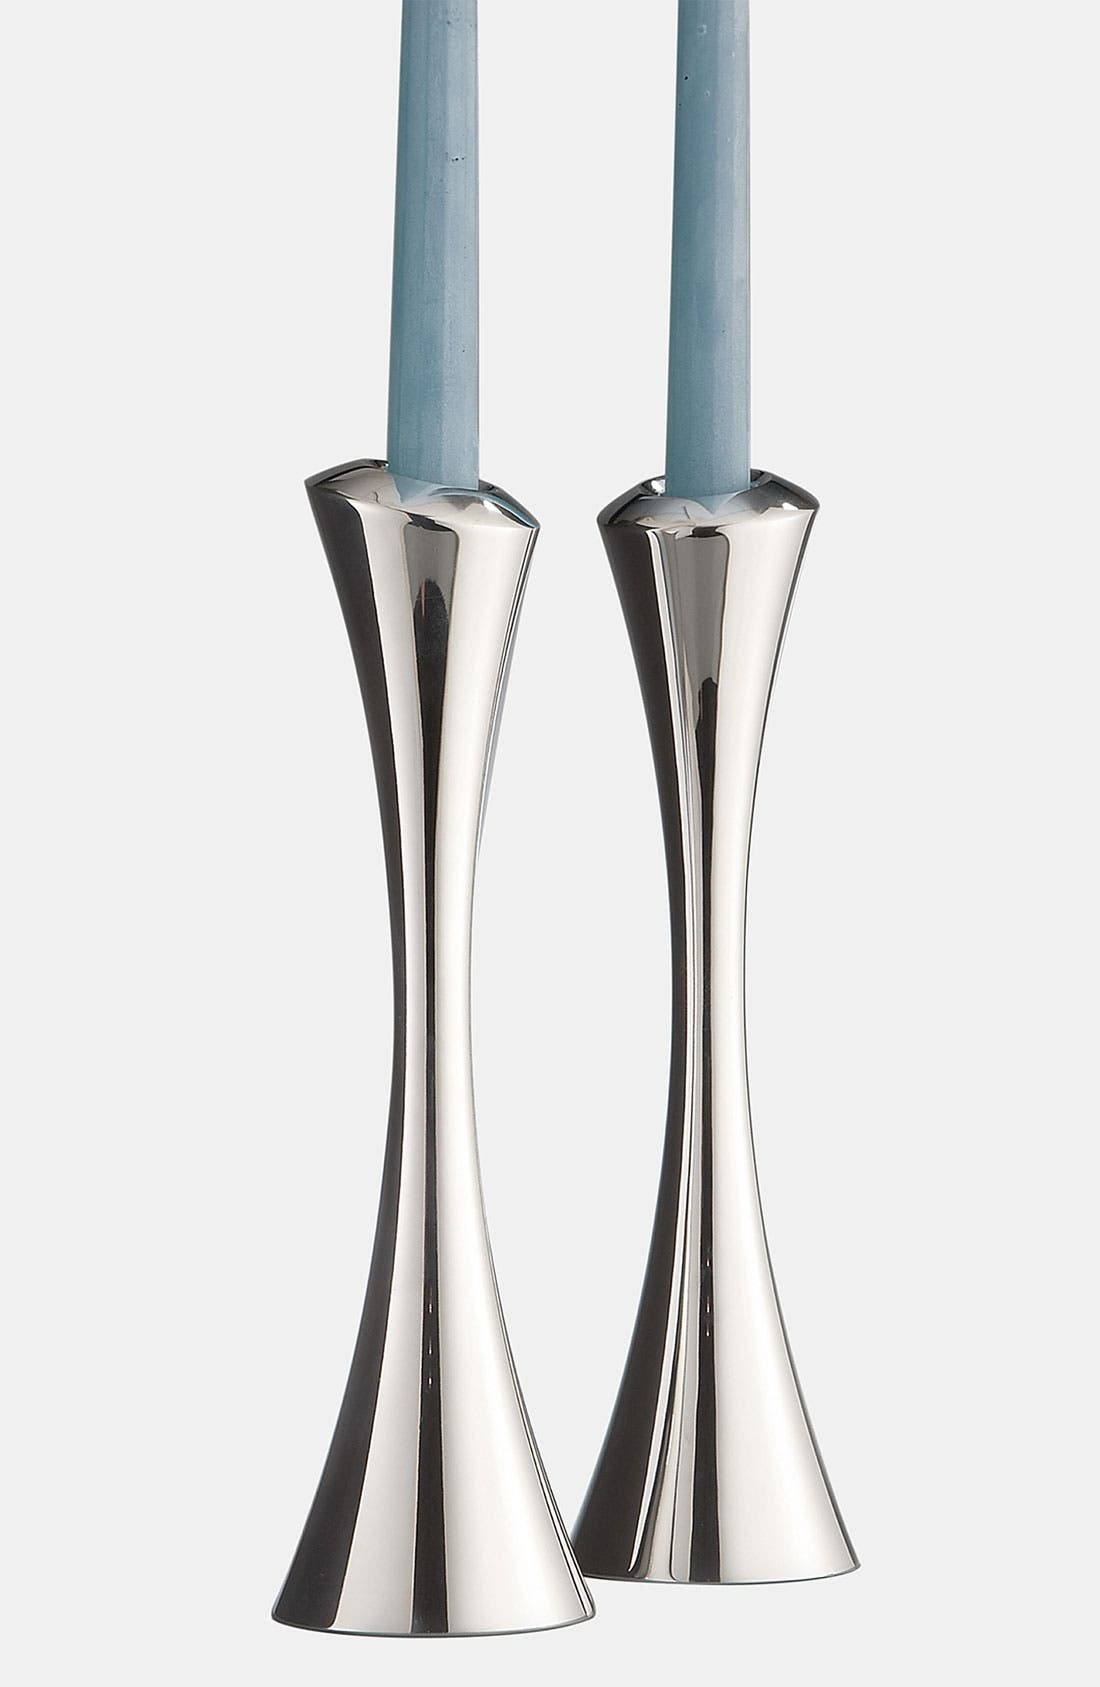 Nambé Aquila Set of 2 Candlesticks